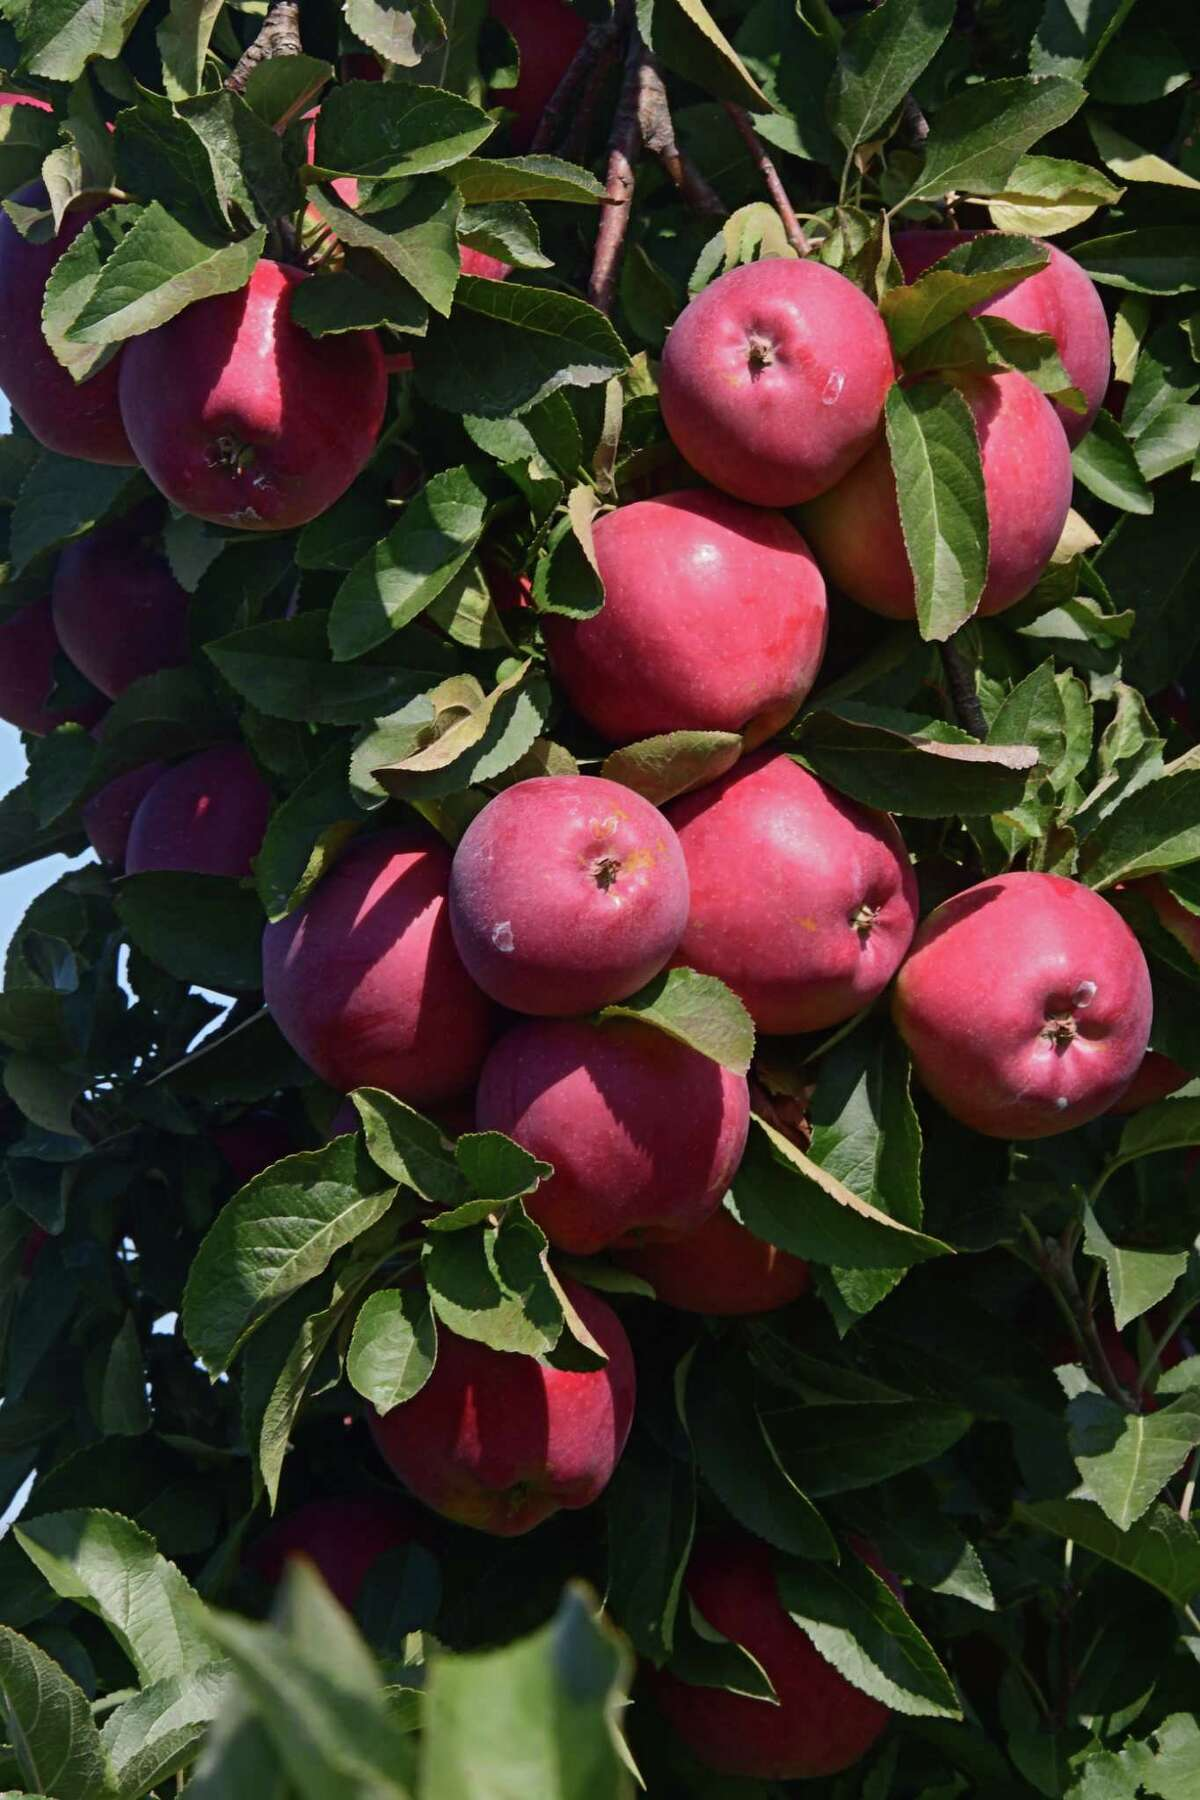 An abundance of apples are seen in a tree at Windy Hill Orchard on Tuesday, Sept. 22, 2020 in Castleton, N.Y. (Lori Van Buren/Times Union)